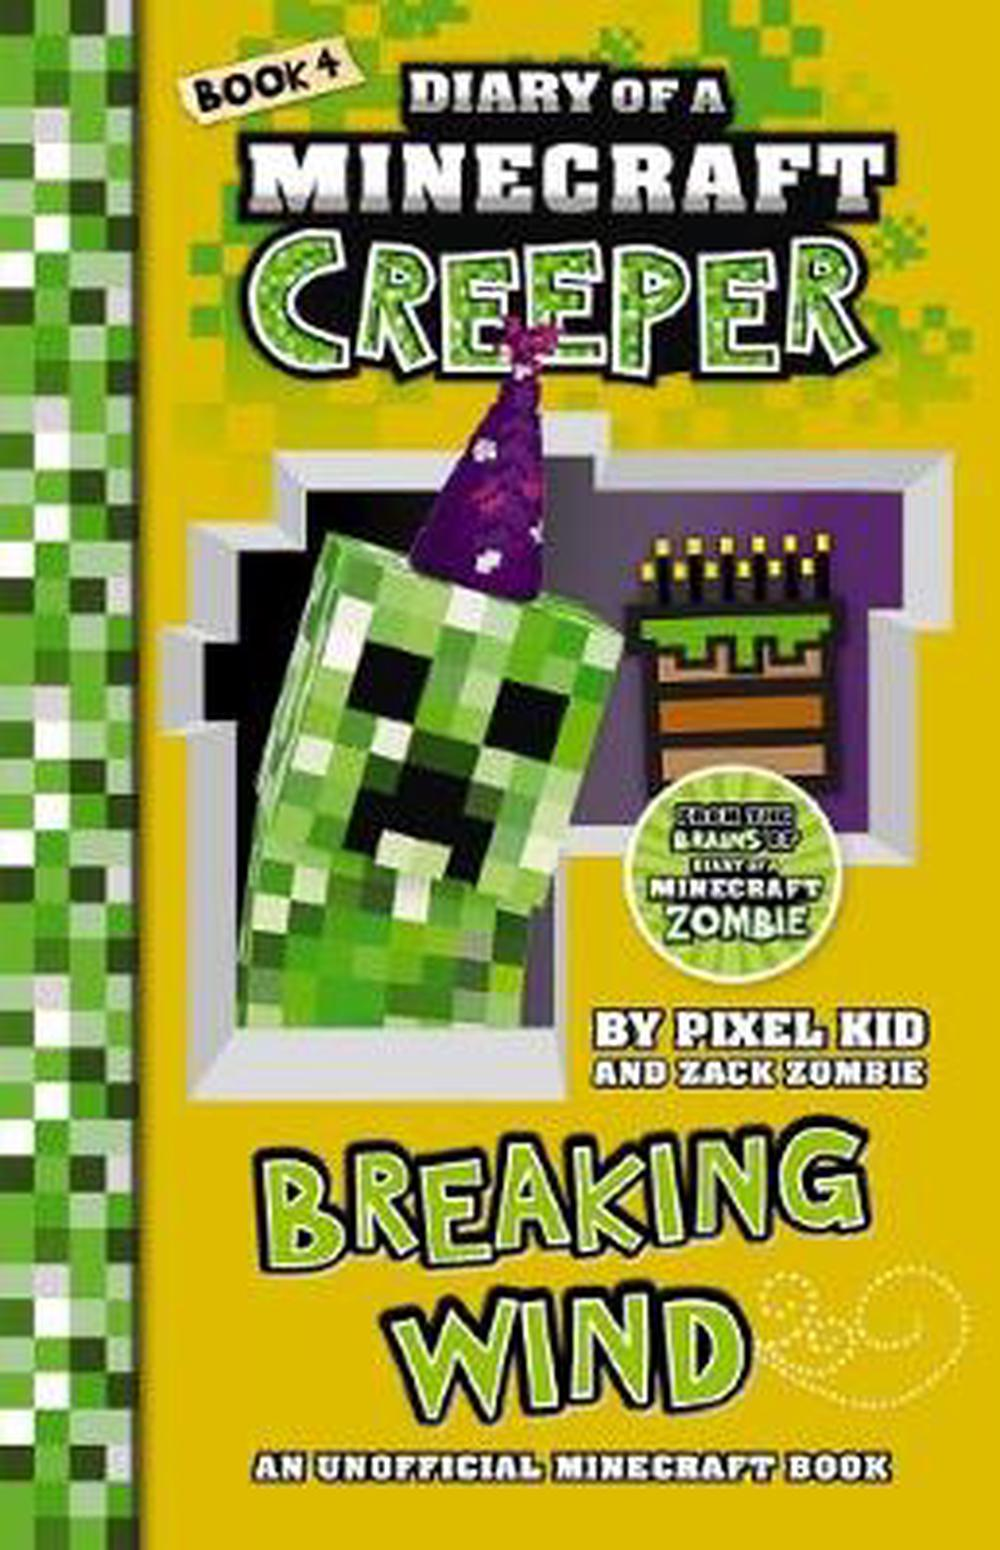 Diary of a Minecraft Creeper #4Breaking Wind